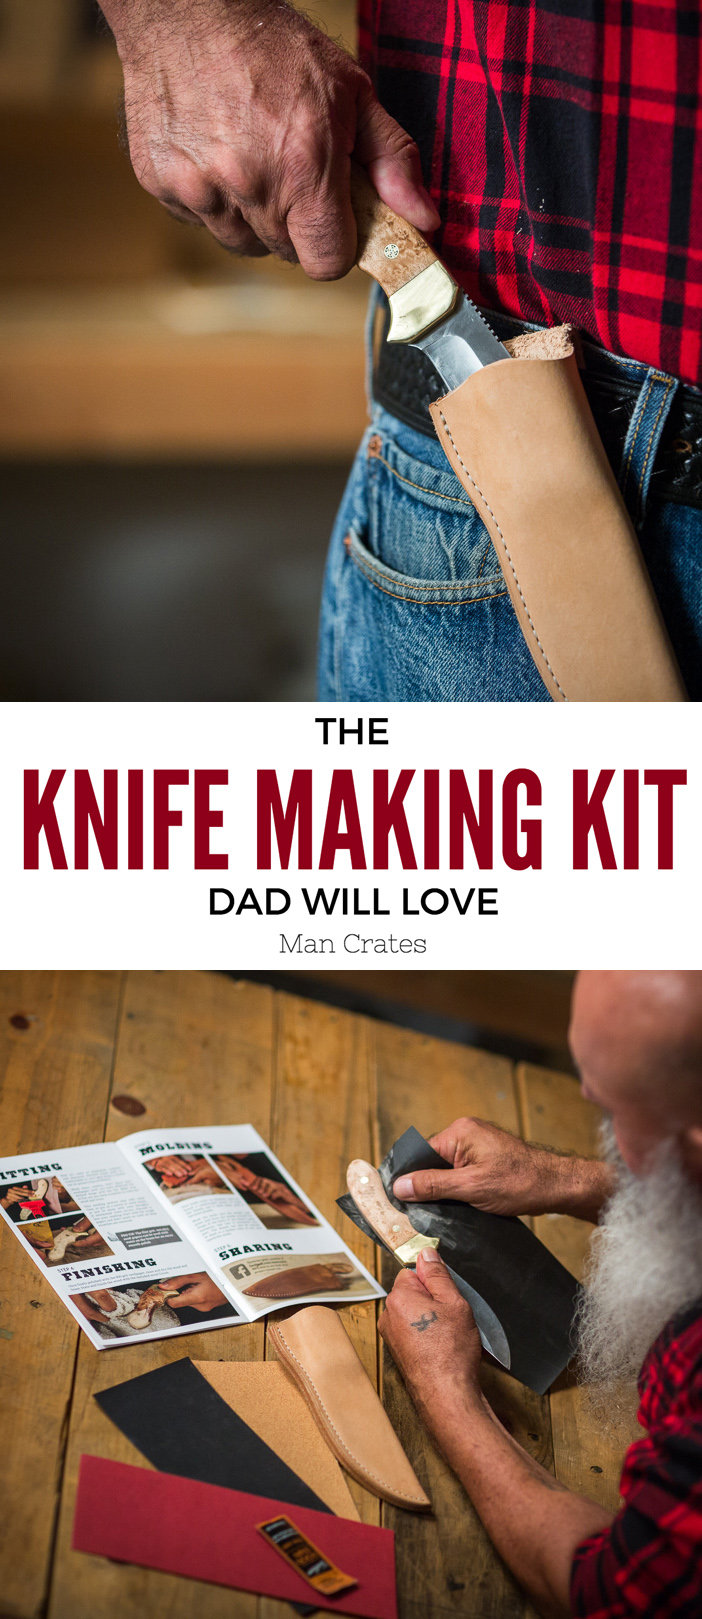 Knife Making Kit - a cool Father's Day gift idea